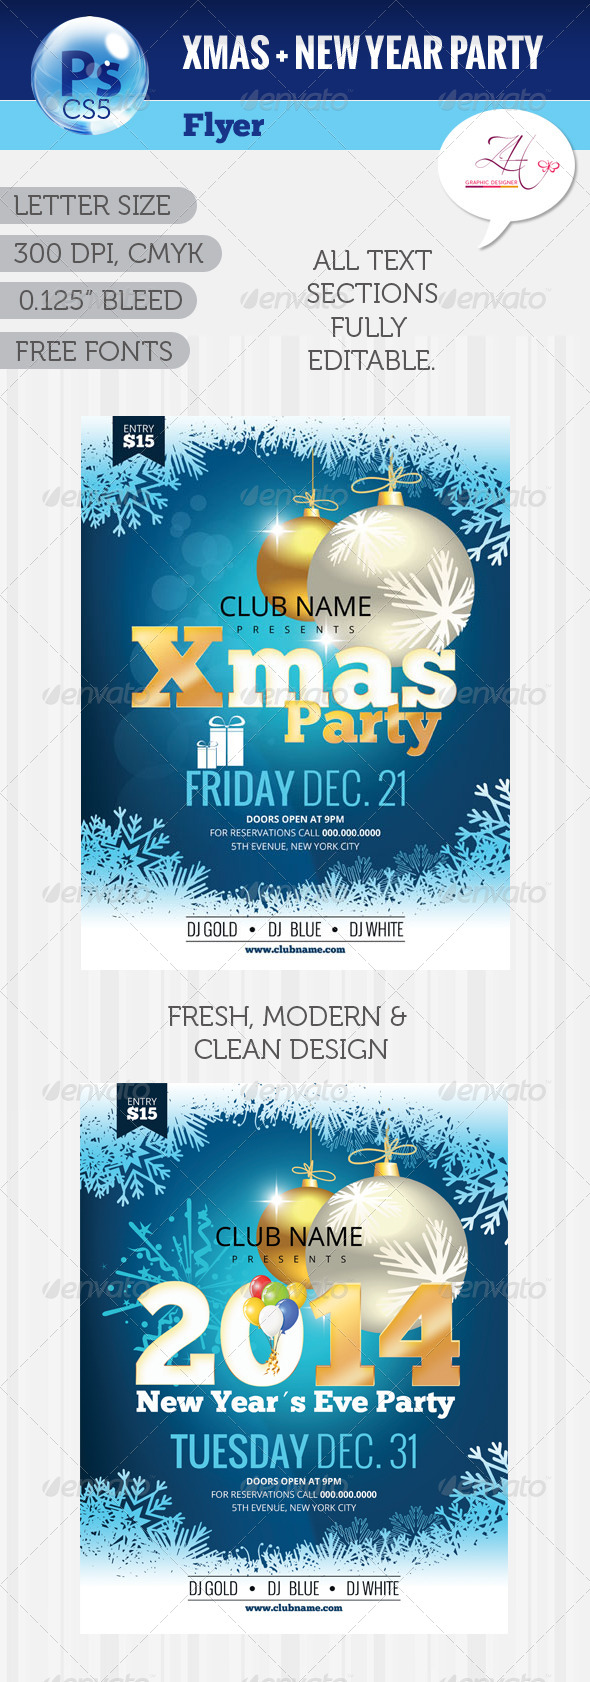 GraphicRiver Xmas & NYE Party Flyer 6042924